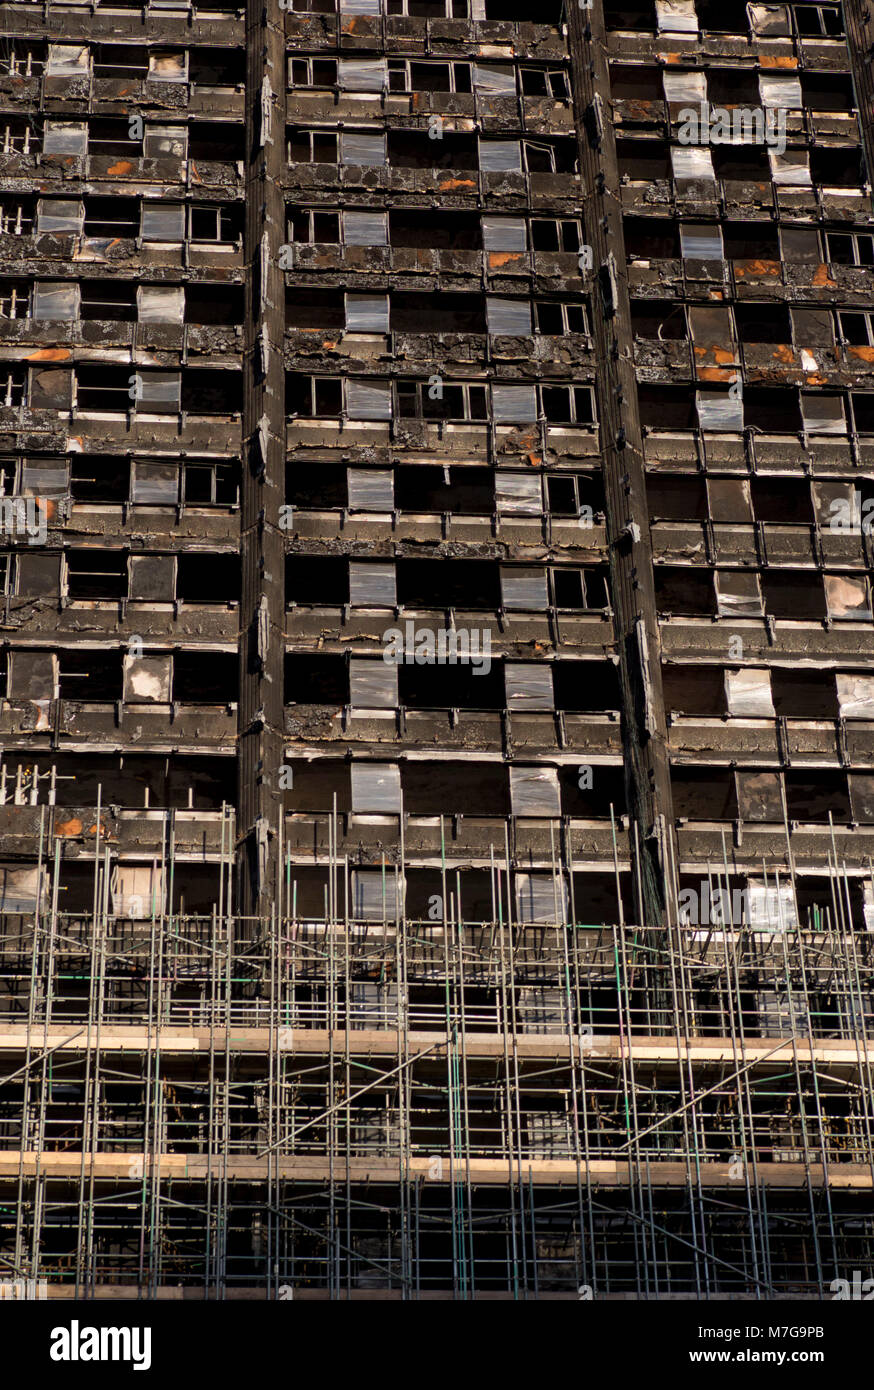 View of of burnt-out shell of Grenfell Tower housing with scaffolding, before demolition after fire disaster in - Stock Image